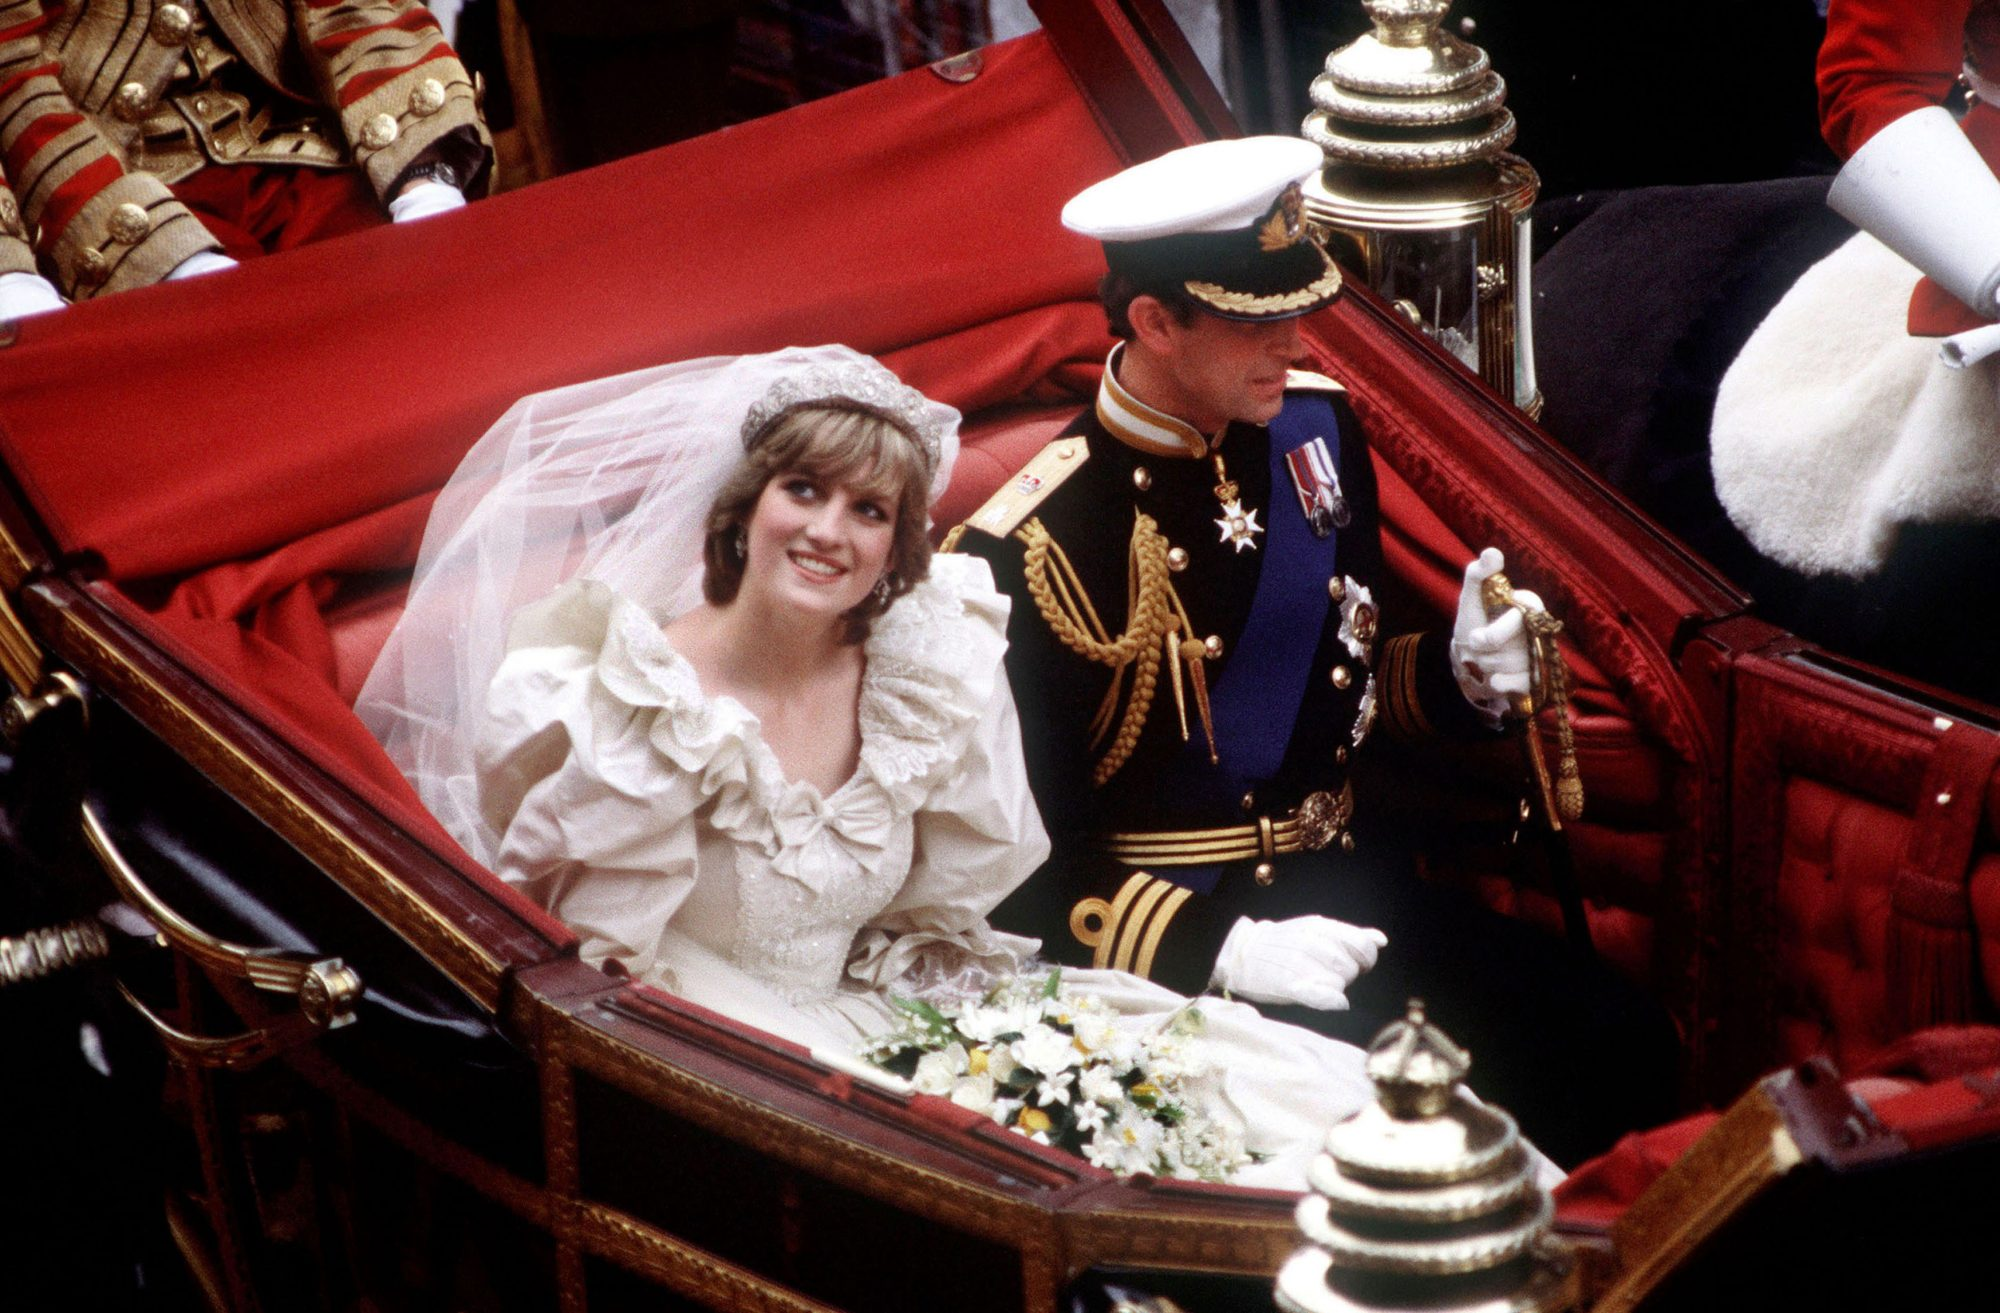 Princess Diana Wedding Day Carriage